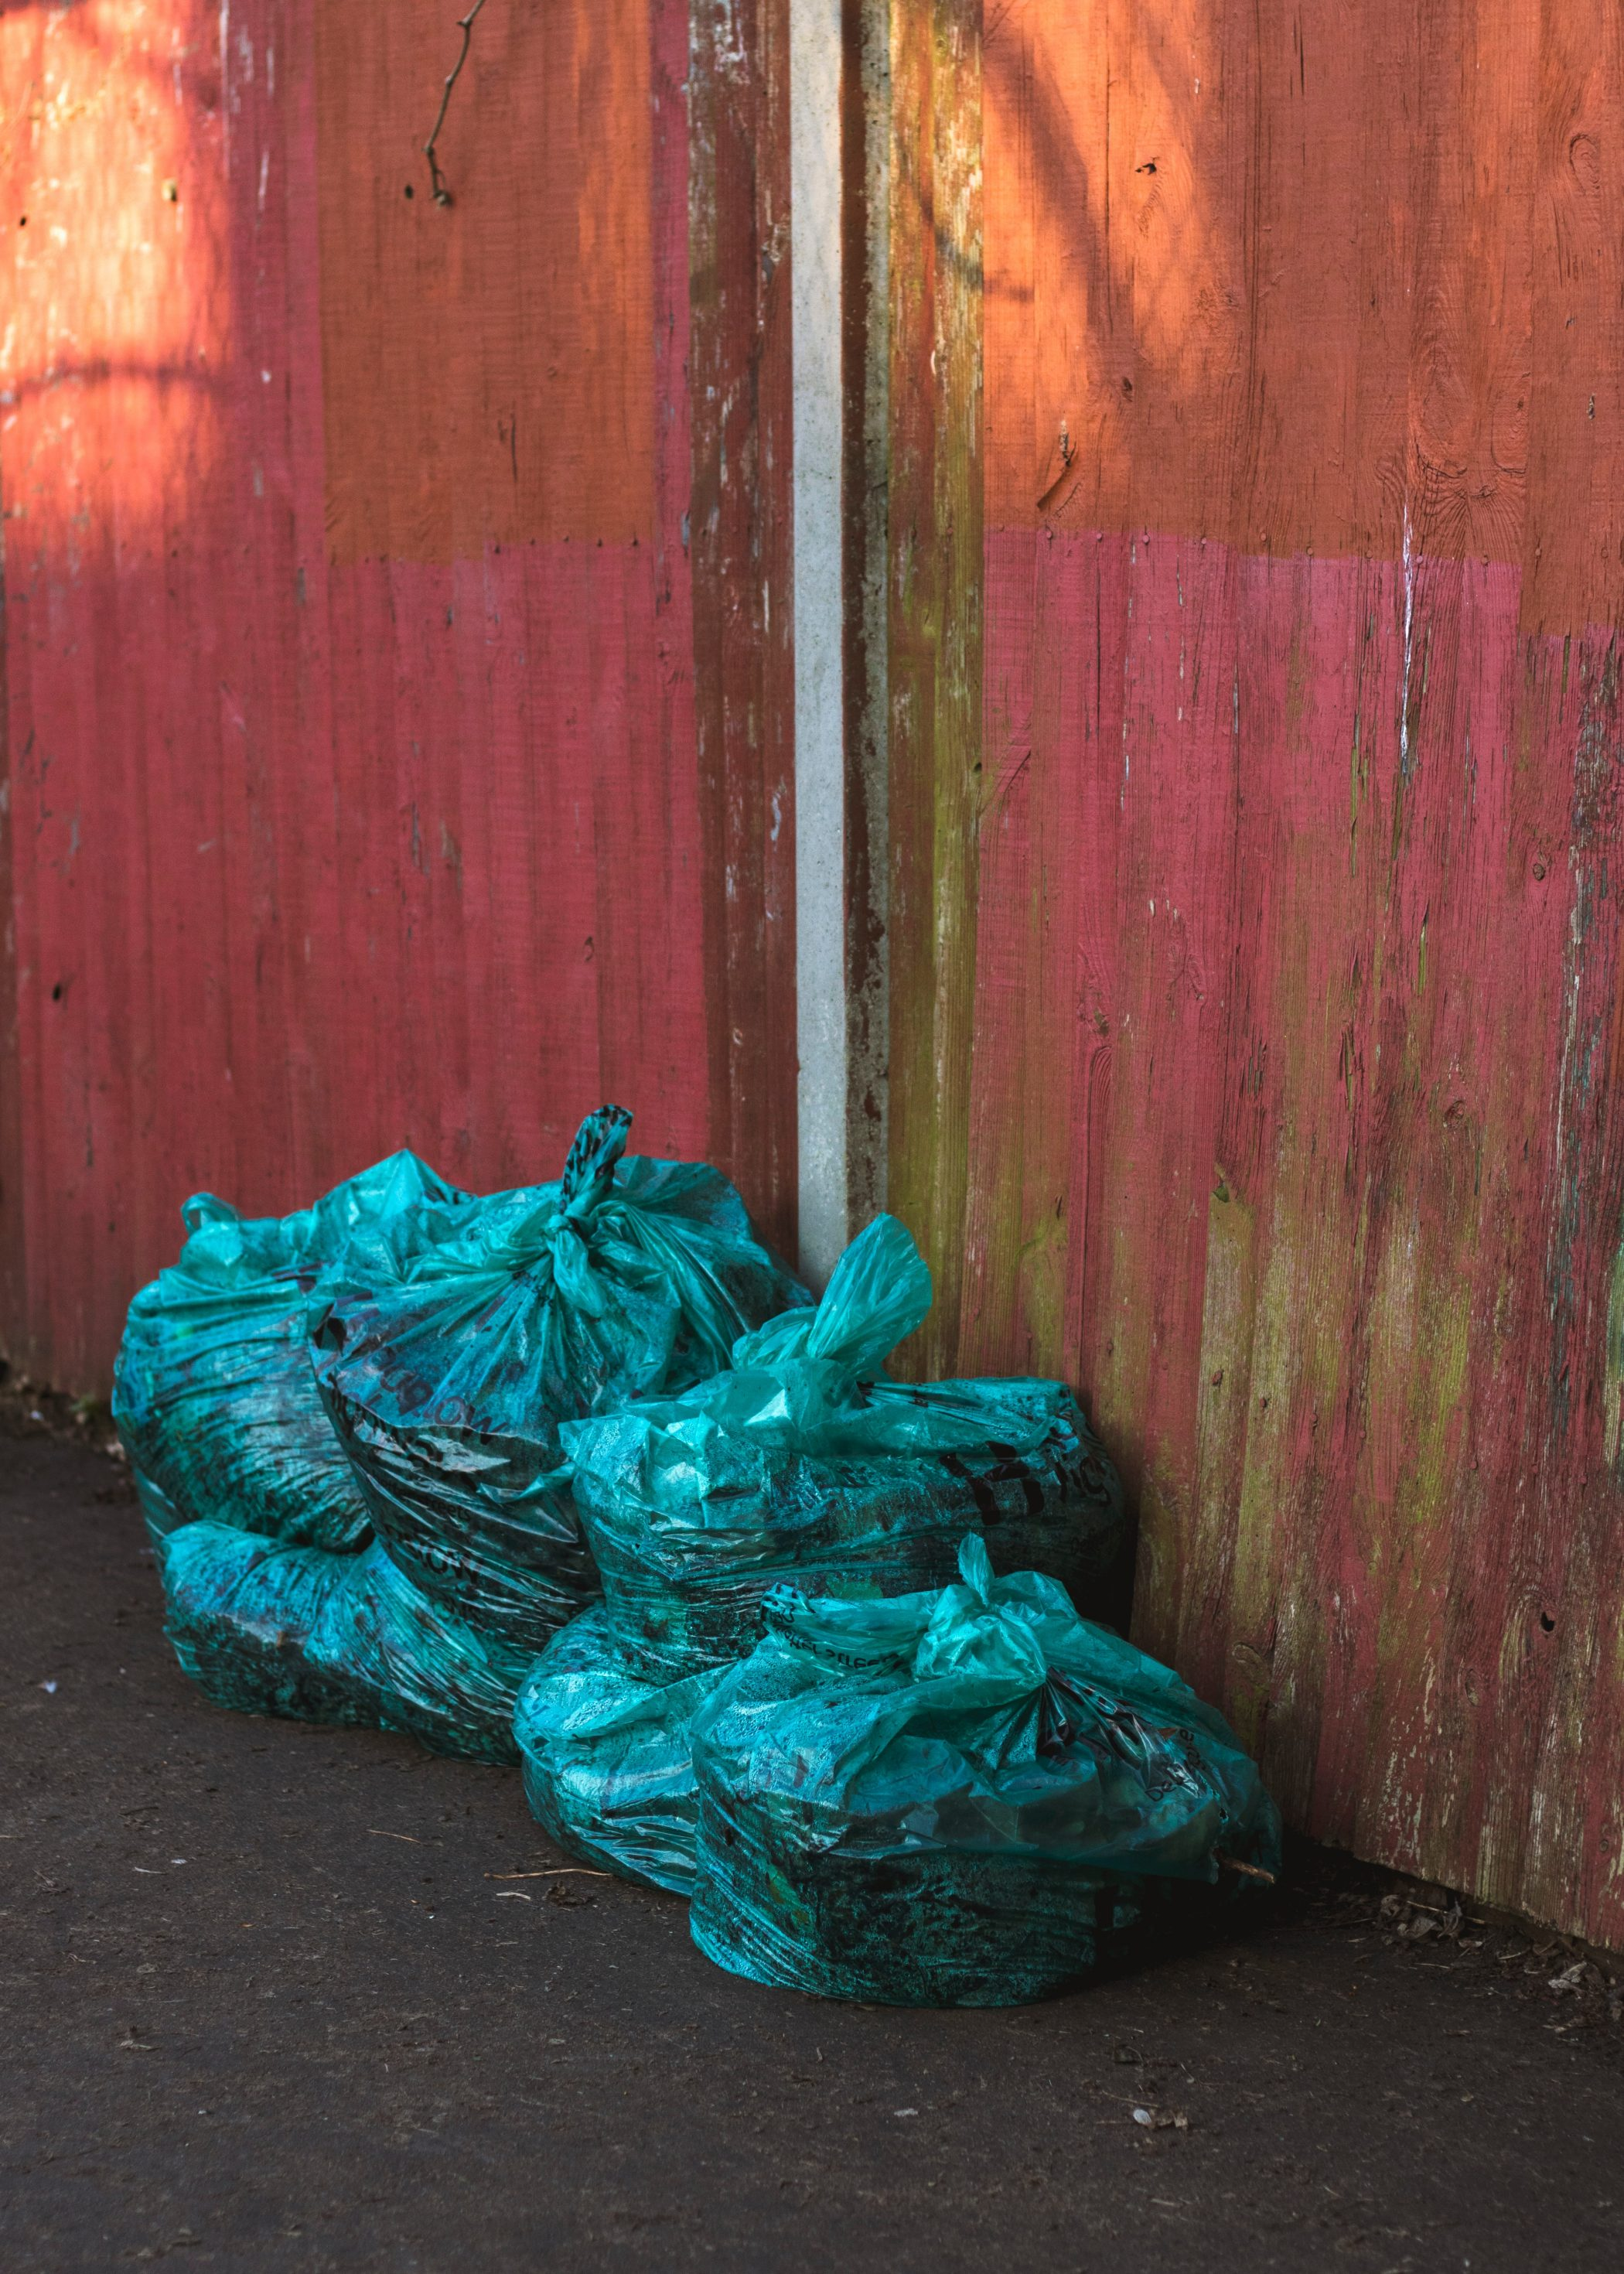 Trash Bags Waiting for Collection